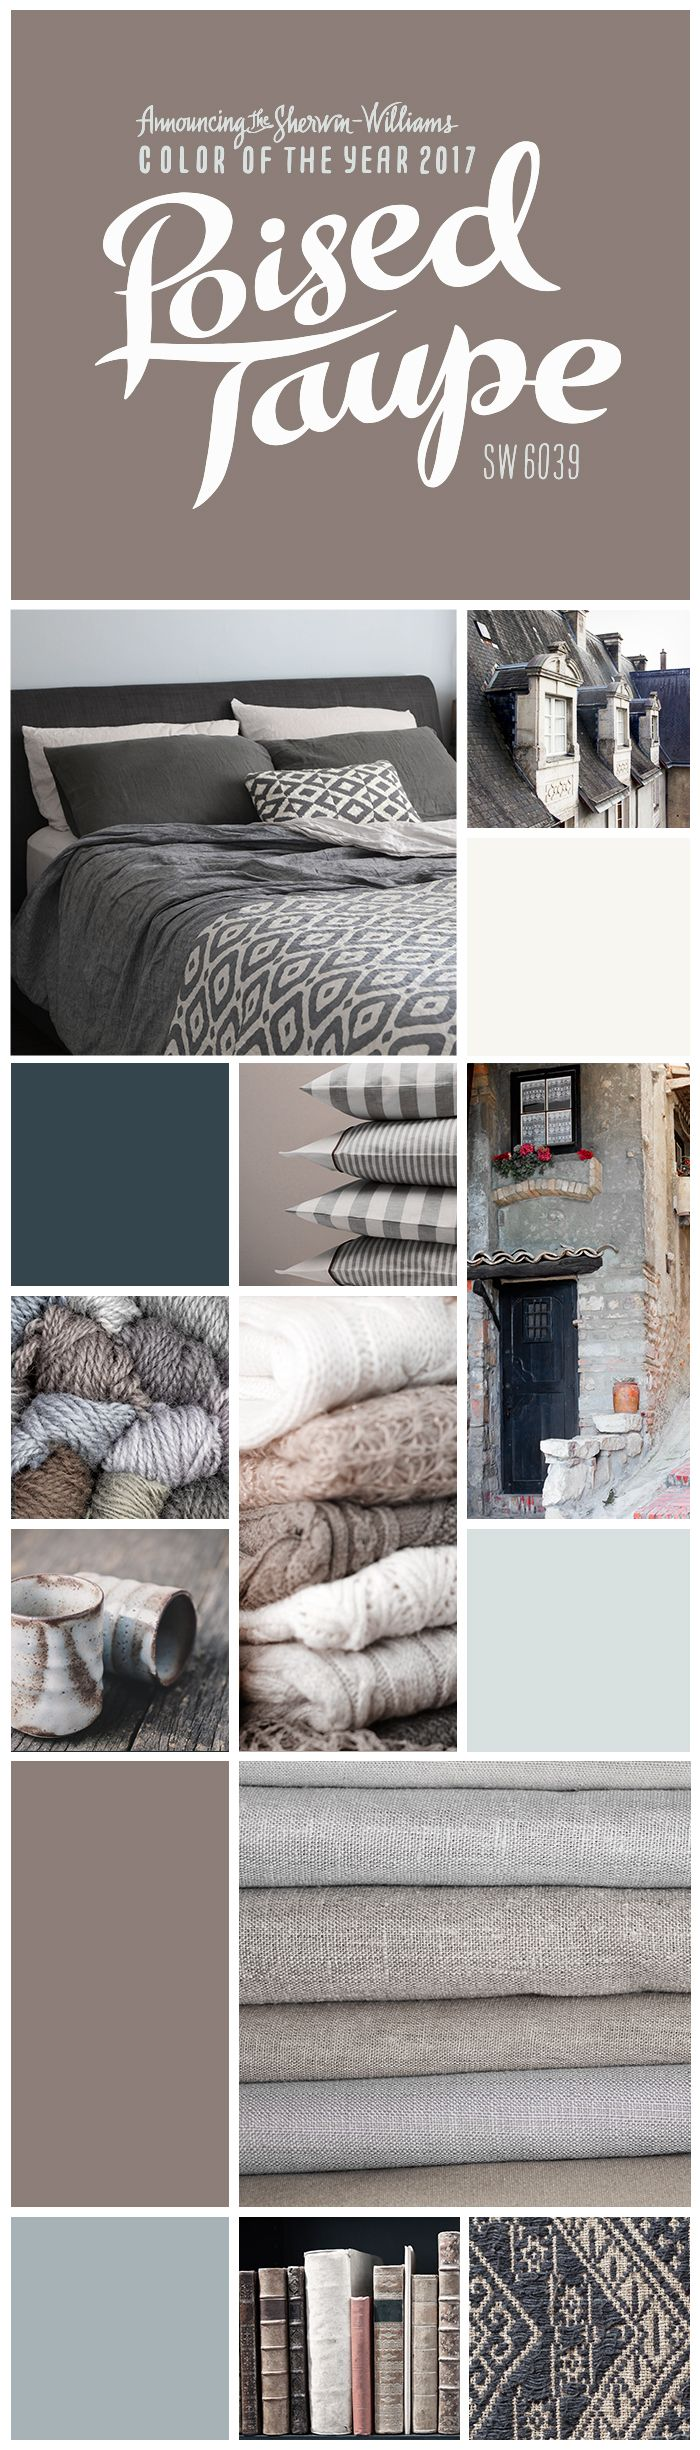 best 25 taupe bedding ideas on pinterest large bed linen large poised taupe sw 6039 as our 2017 color of the year effortlessly balancing warm brown and cool gray tones poised taupe is a timeless neutral